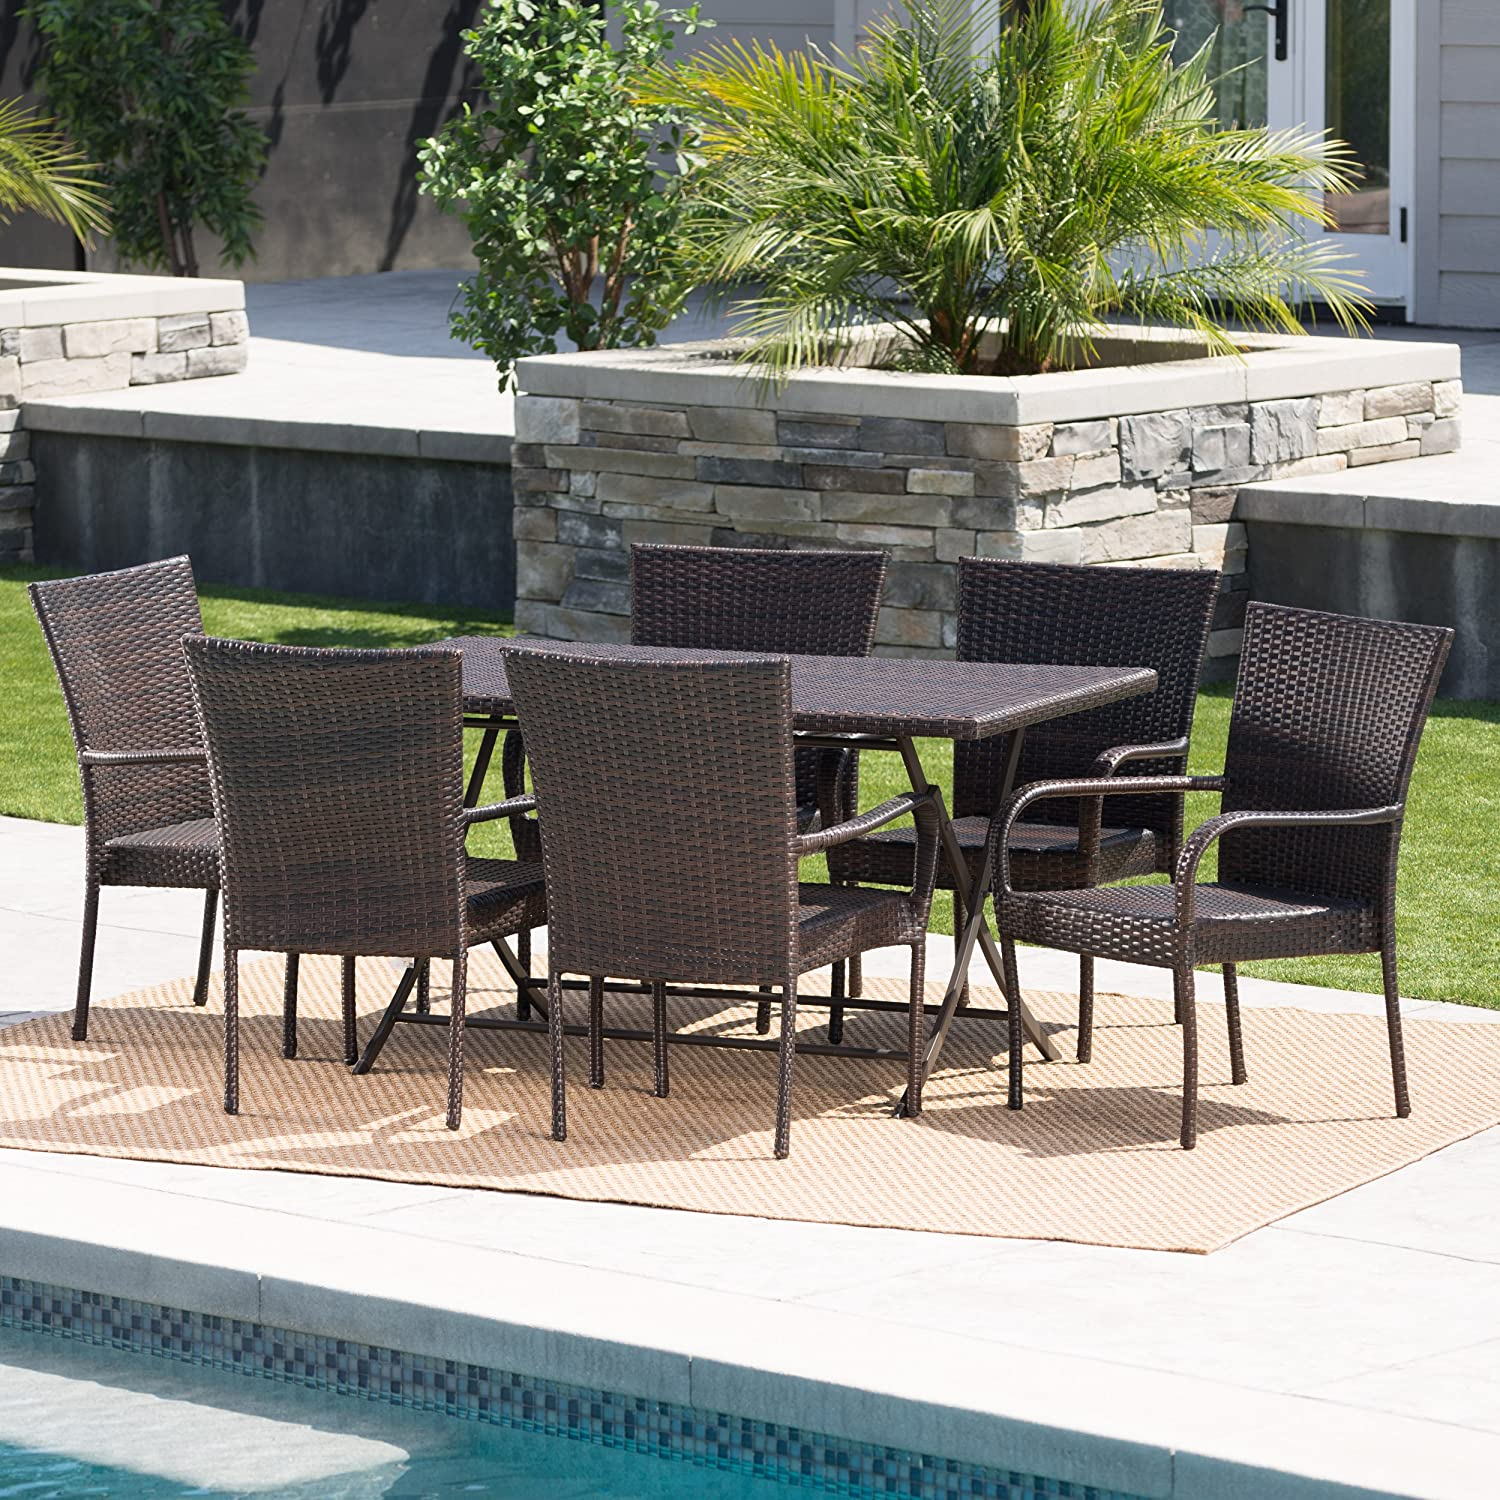 Christopher Knight Home Nina Outdoor 7 Piece Multi-Brown Wicker Dining Set with Foldable Table and Stacking Chairs